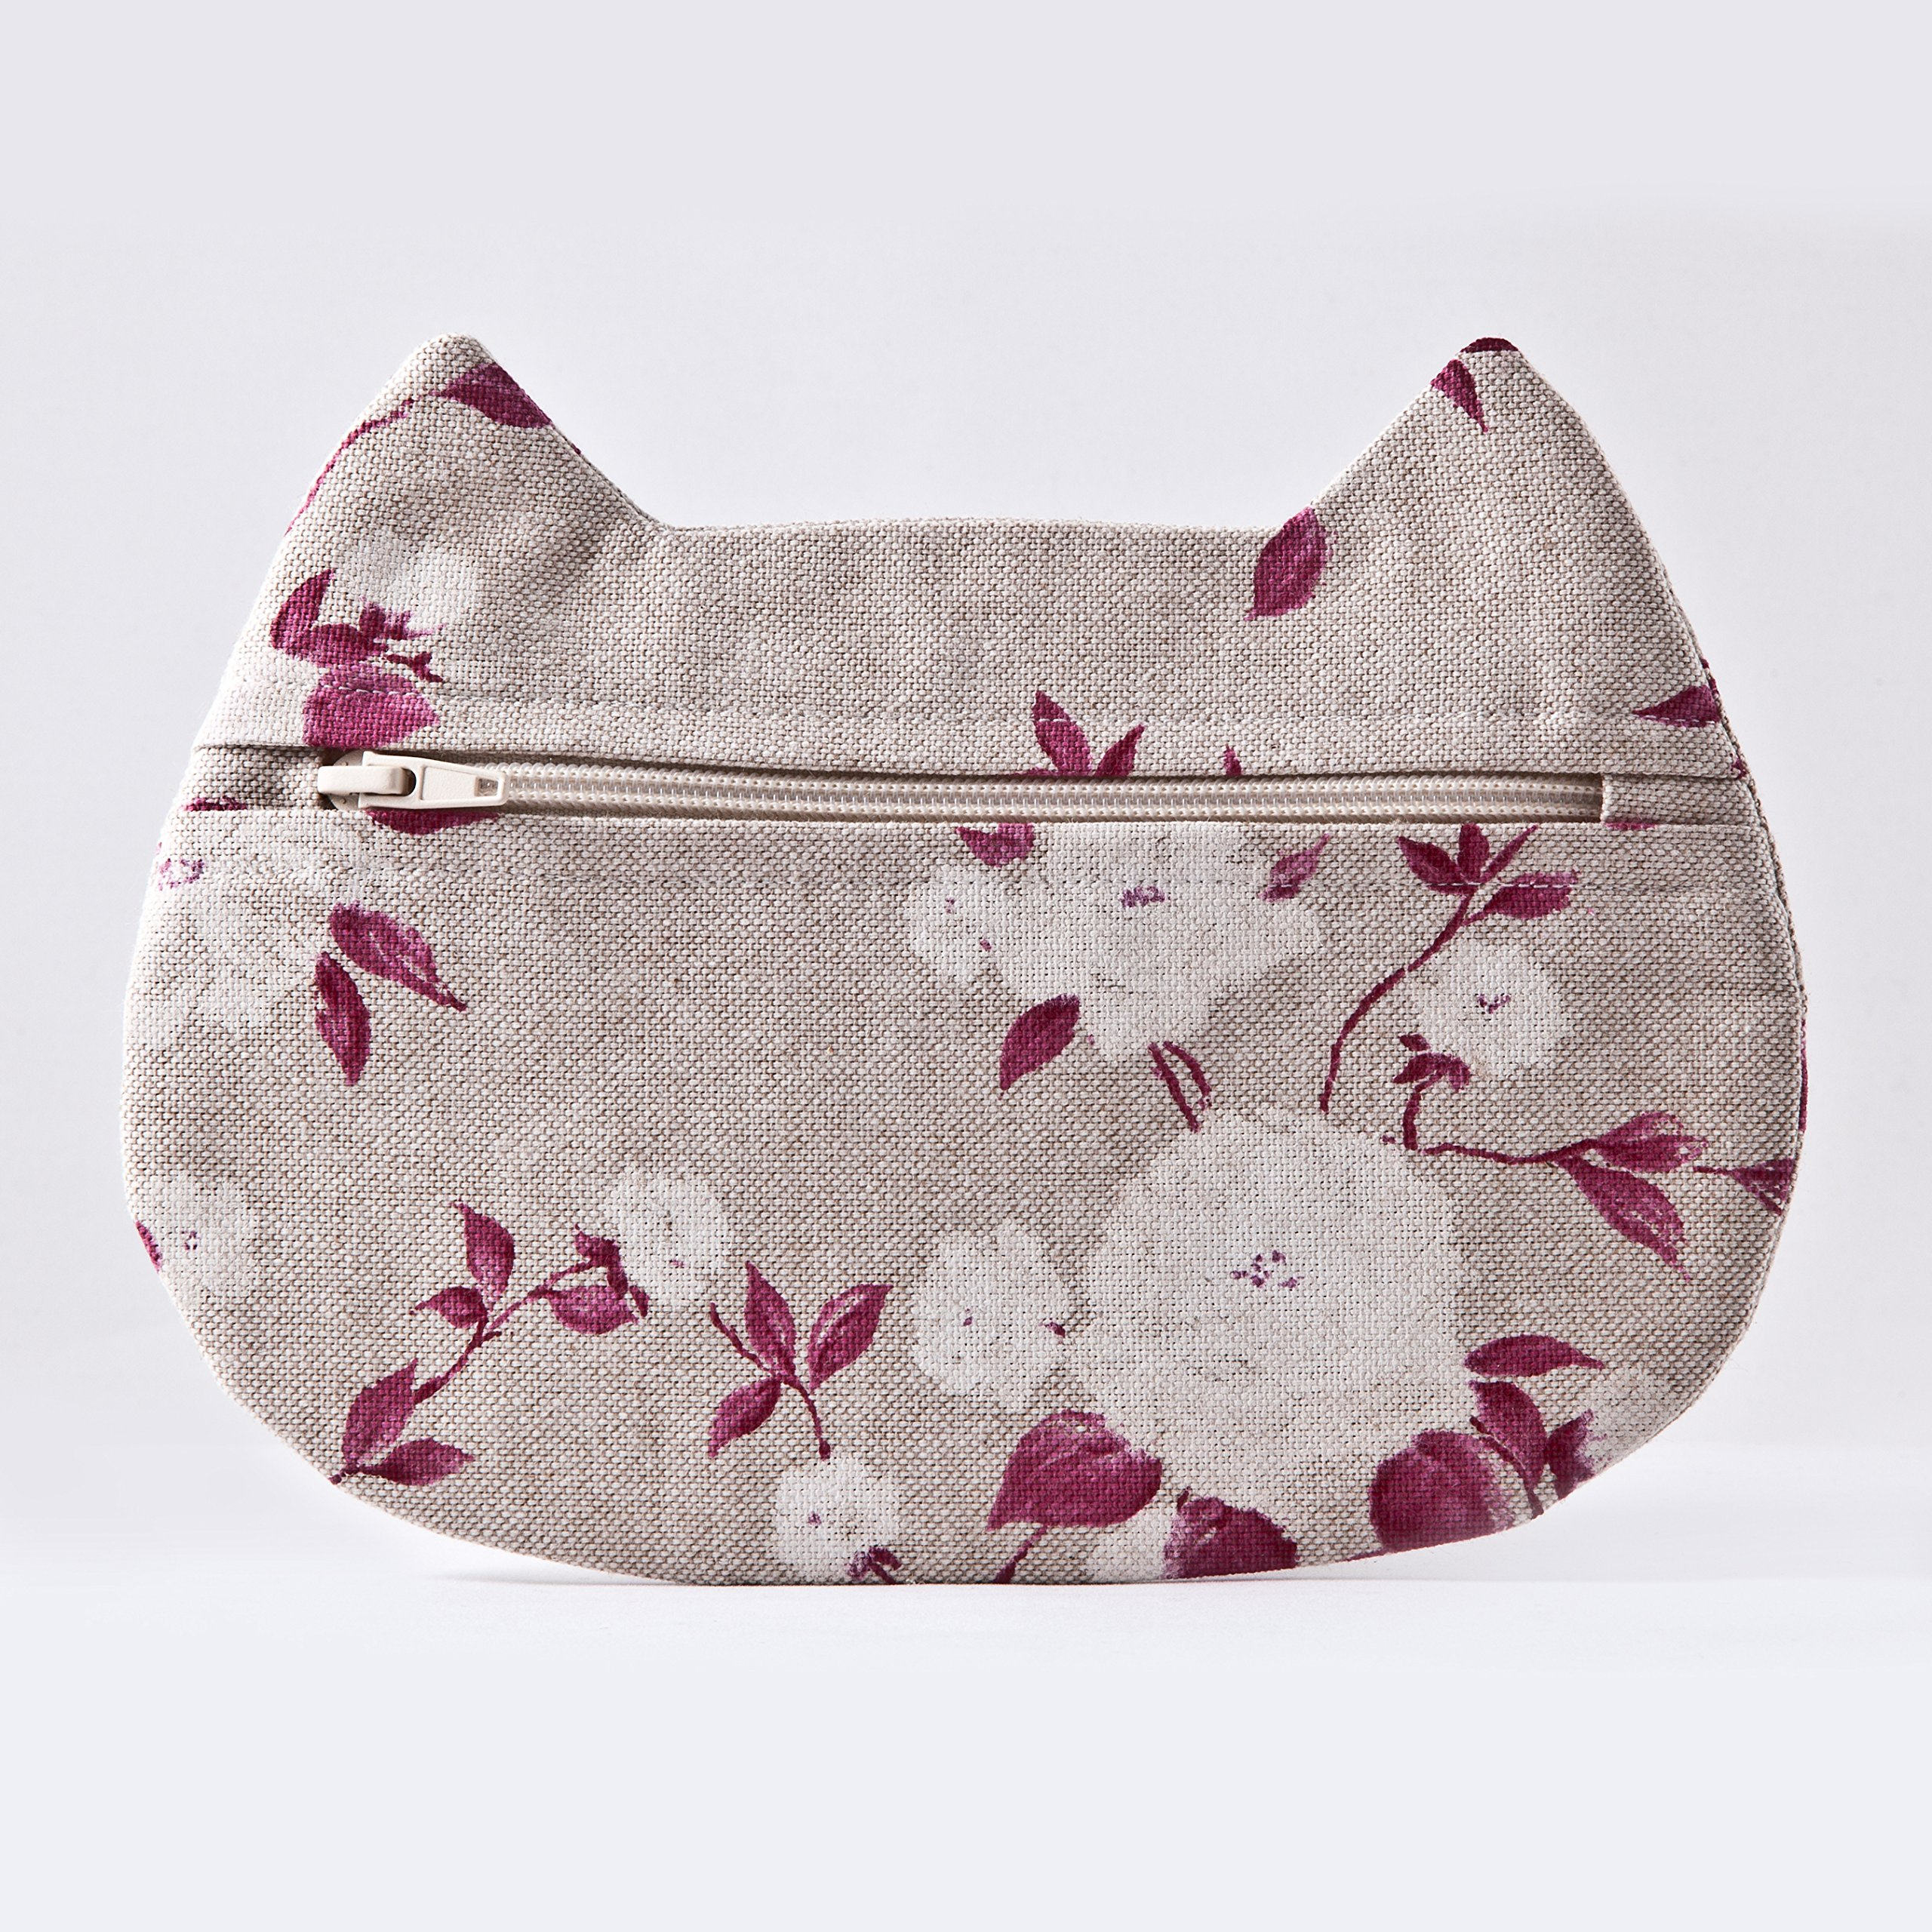 Floral Cosmetic Bag, Cat Makeup Bag, Pencil Case, Gifts for Travelers, Toiletries Bag, Beauty Bag